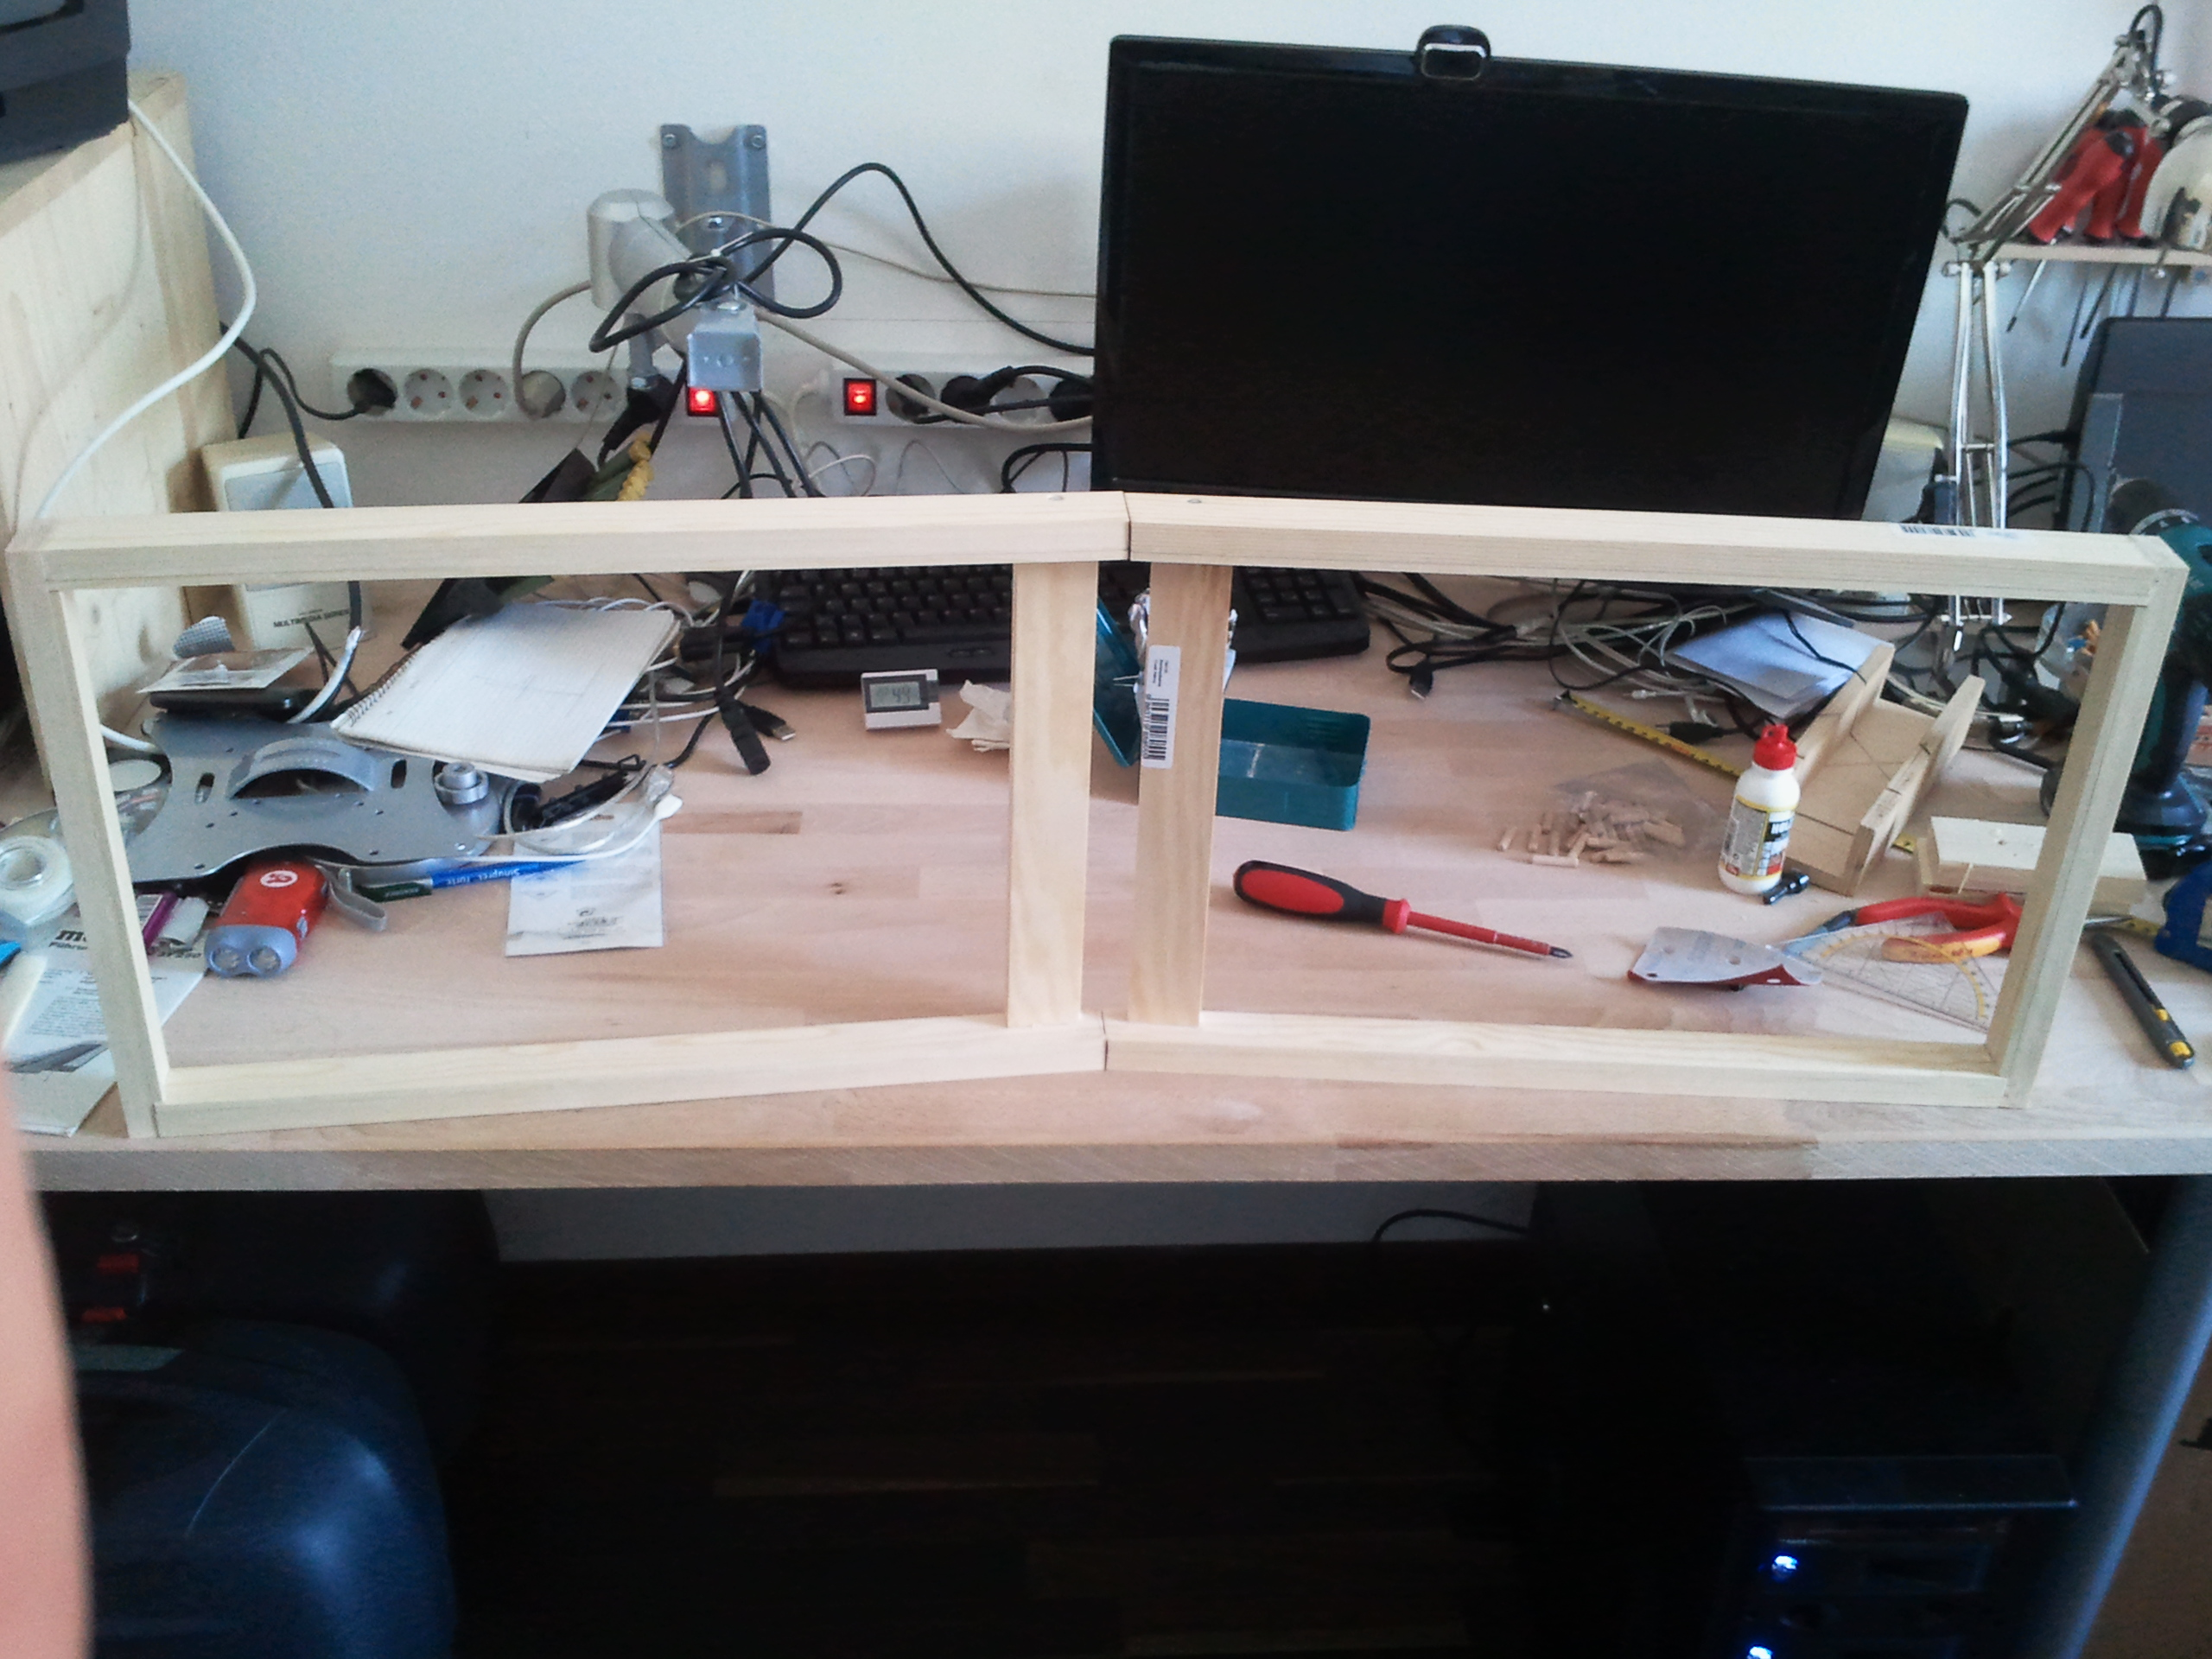 Diy Dual Screen Monitorhalter Der Blog Auf Tn Genano De